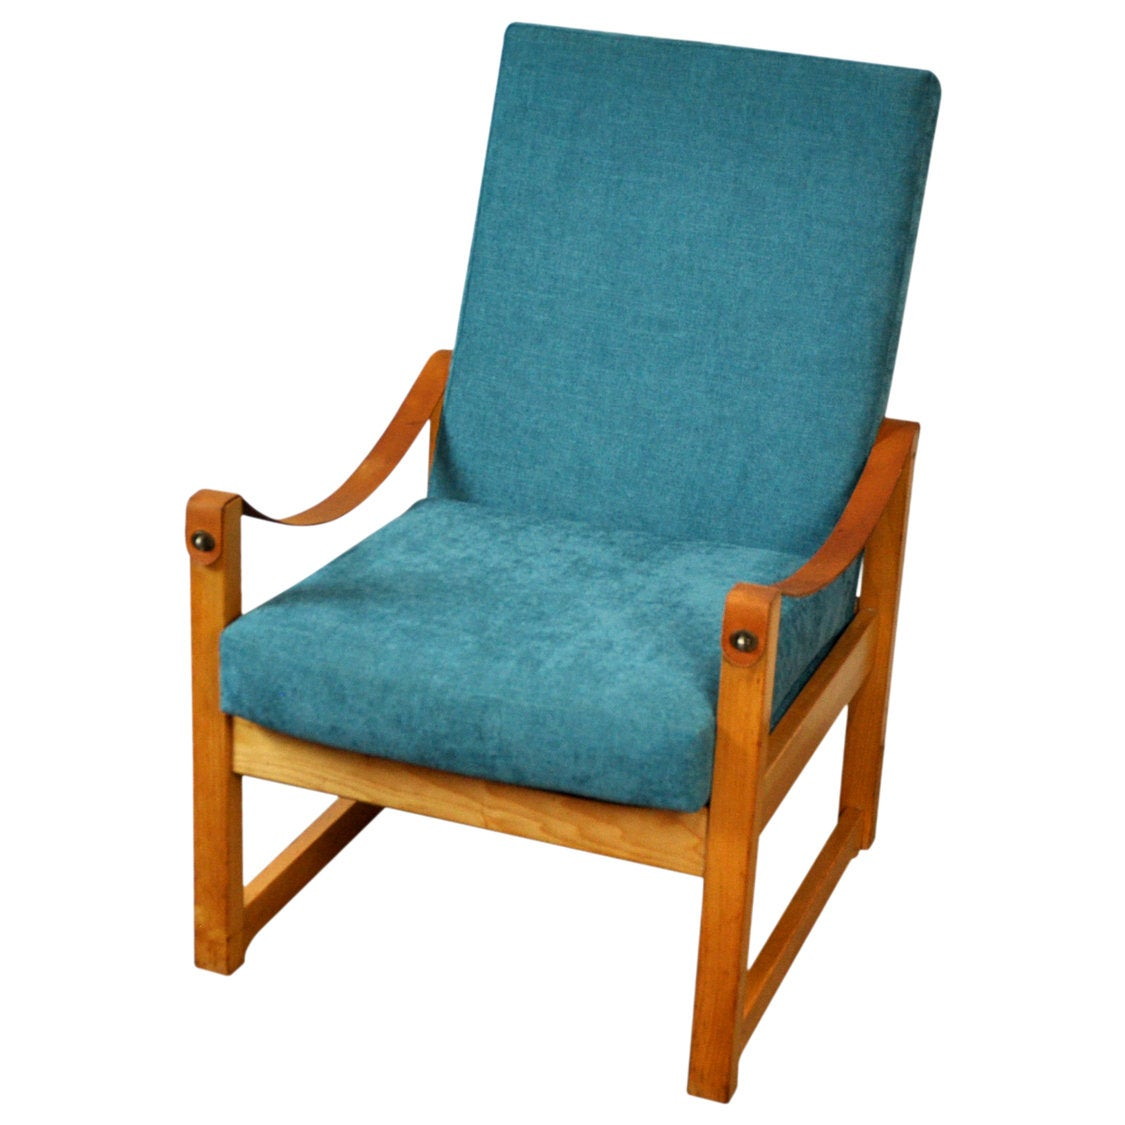 Terence Conran Chair for Dancer and Hearne - AndersBrowne Mid Century Furniture